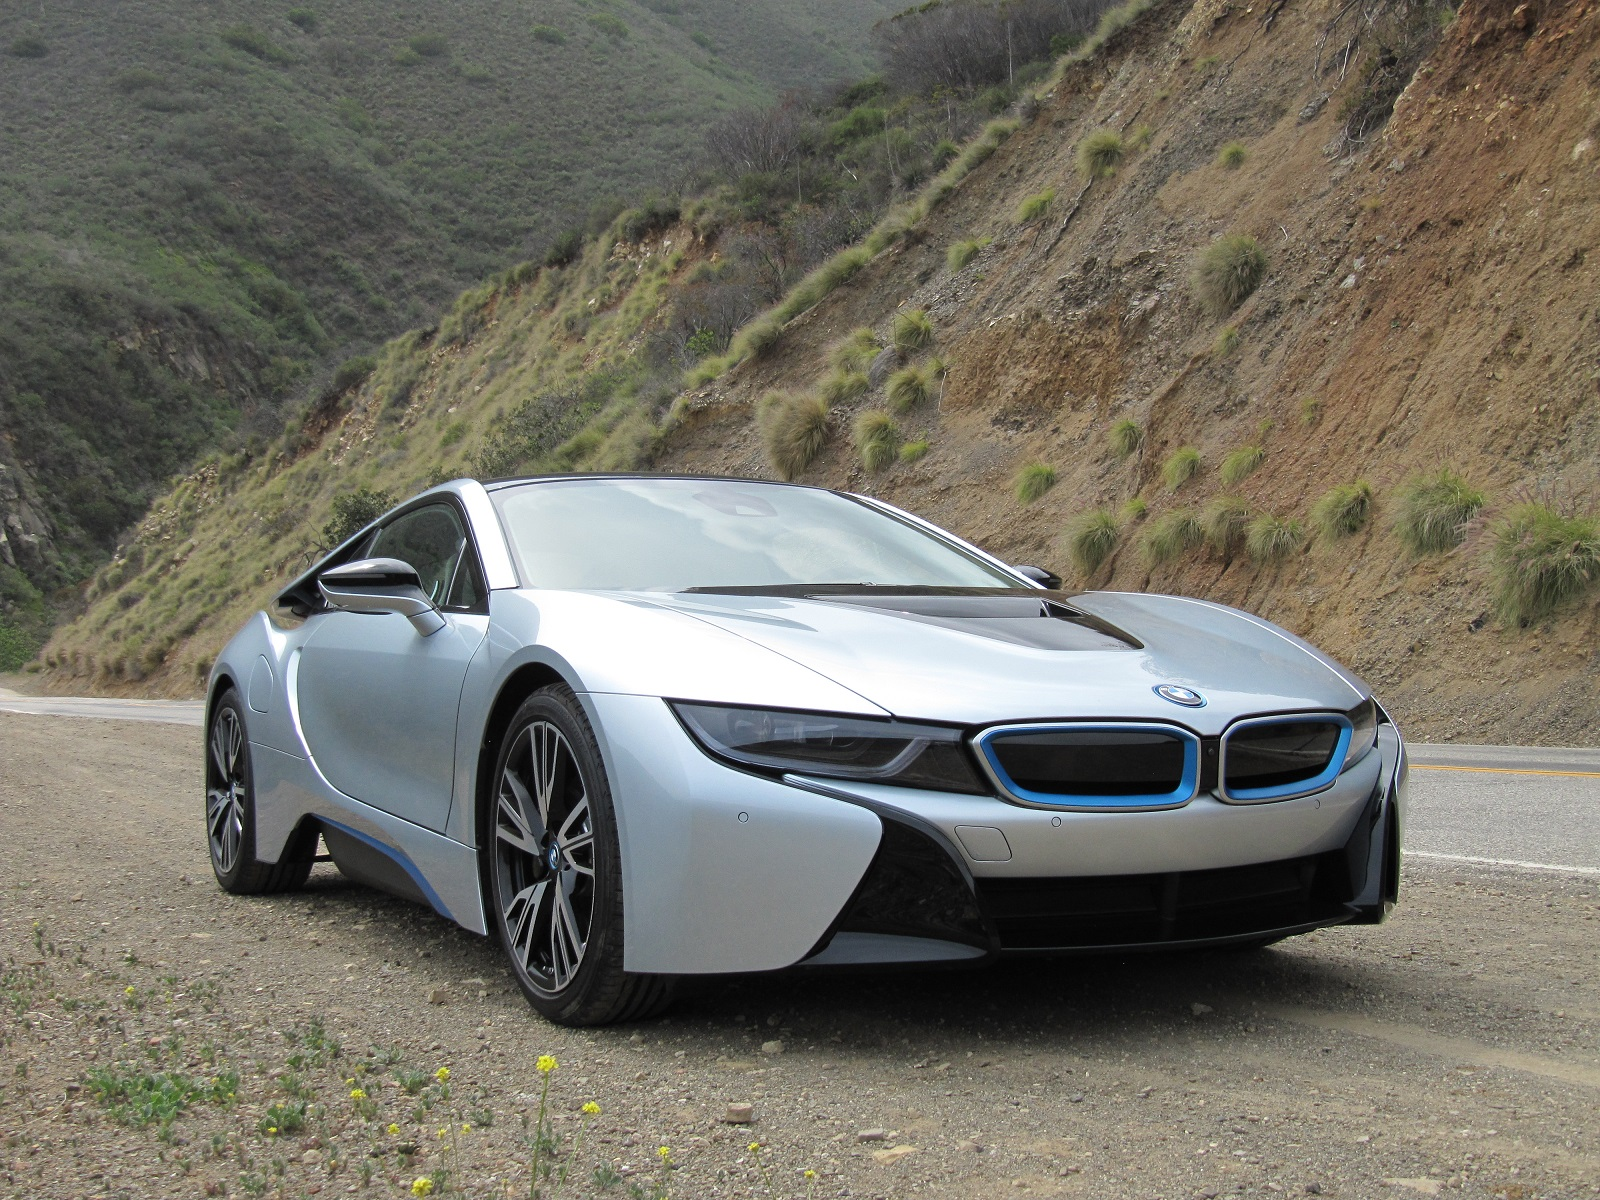 BMW I PlugIn Hybrid Sports Car Full Pricing And Options Announced - 2015 bmw i8 for sale